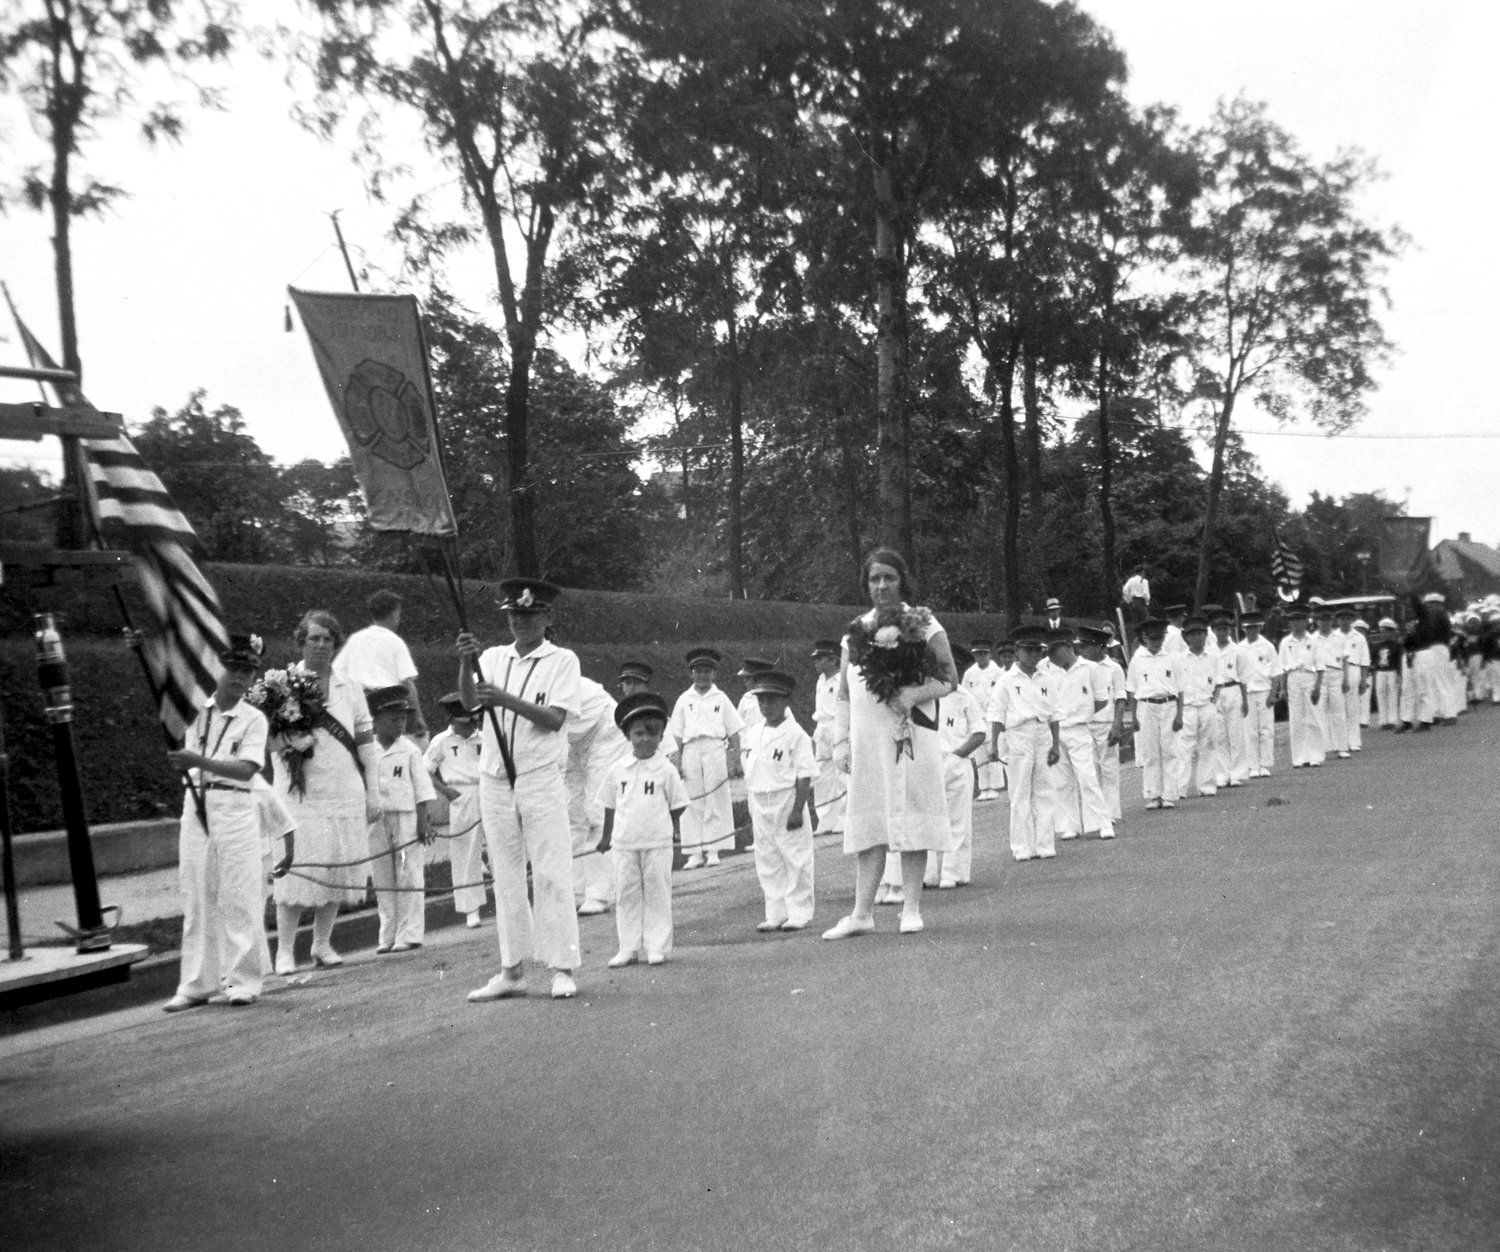 Members of what eventually became Lynbrook's Junior Fire Department from Tally-Ho Company lined up for a parade in the early 1920s.